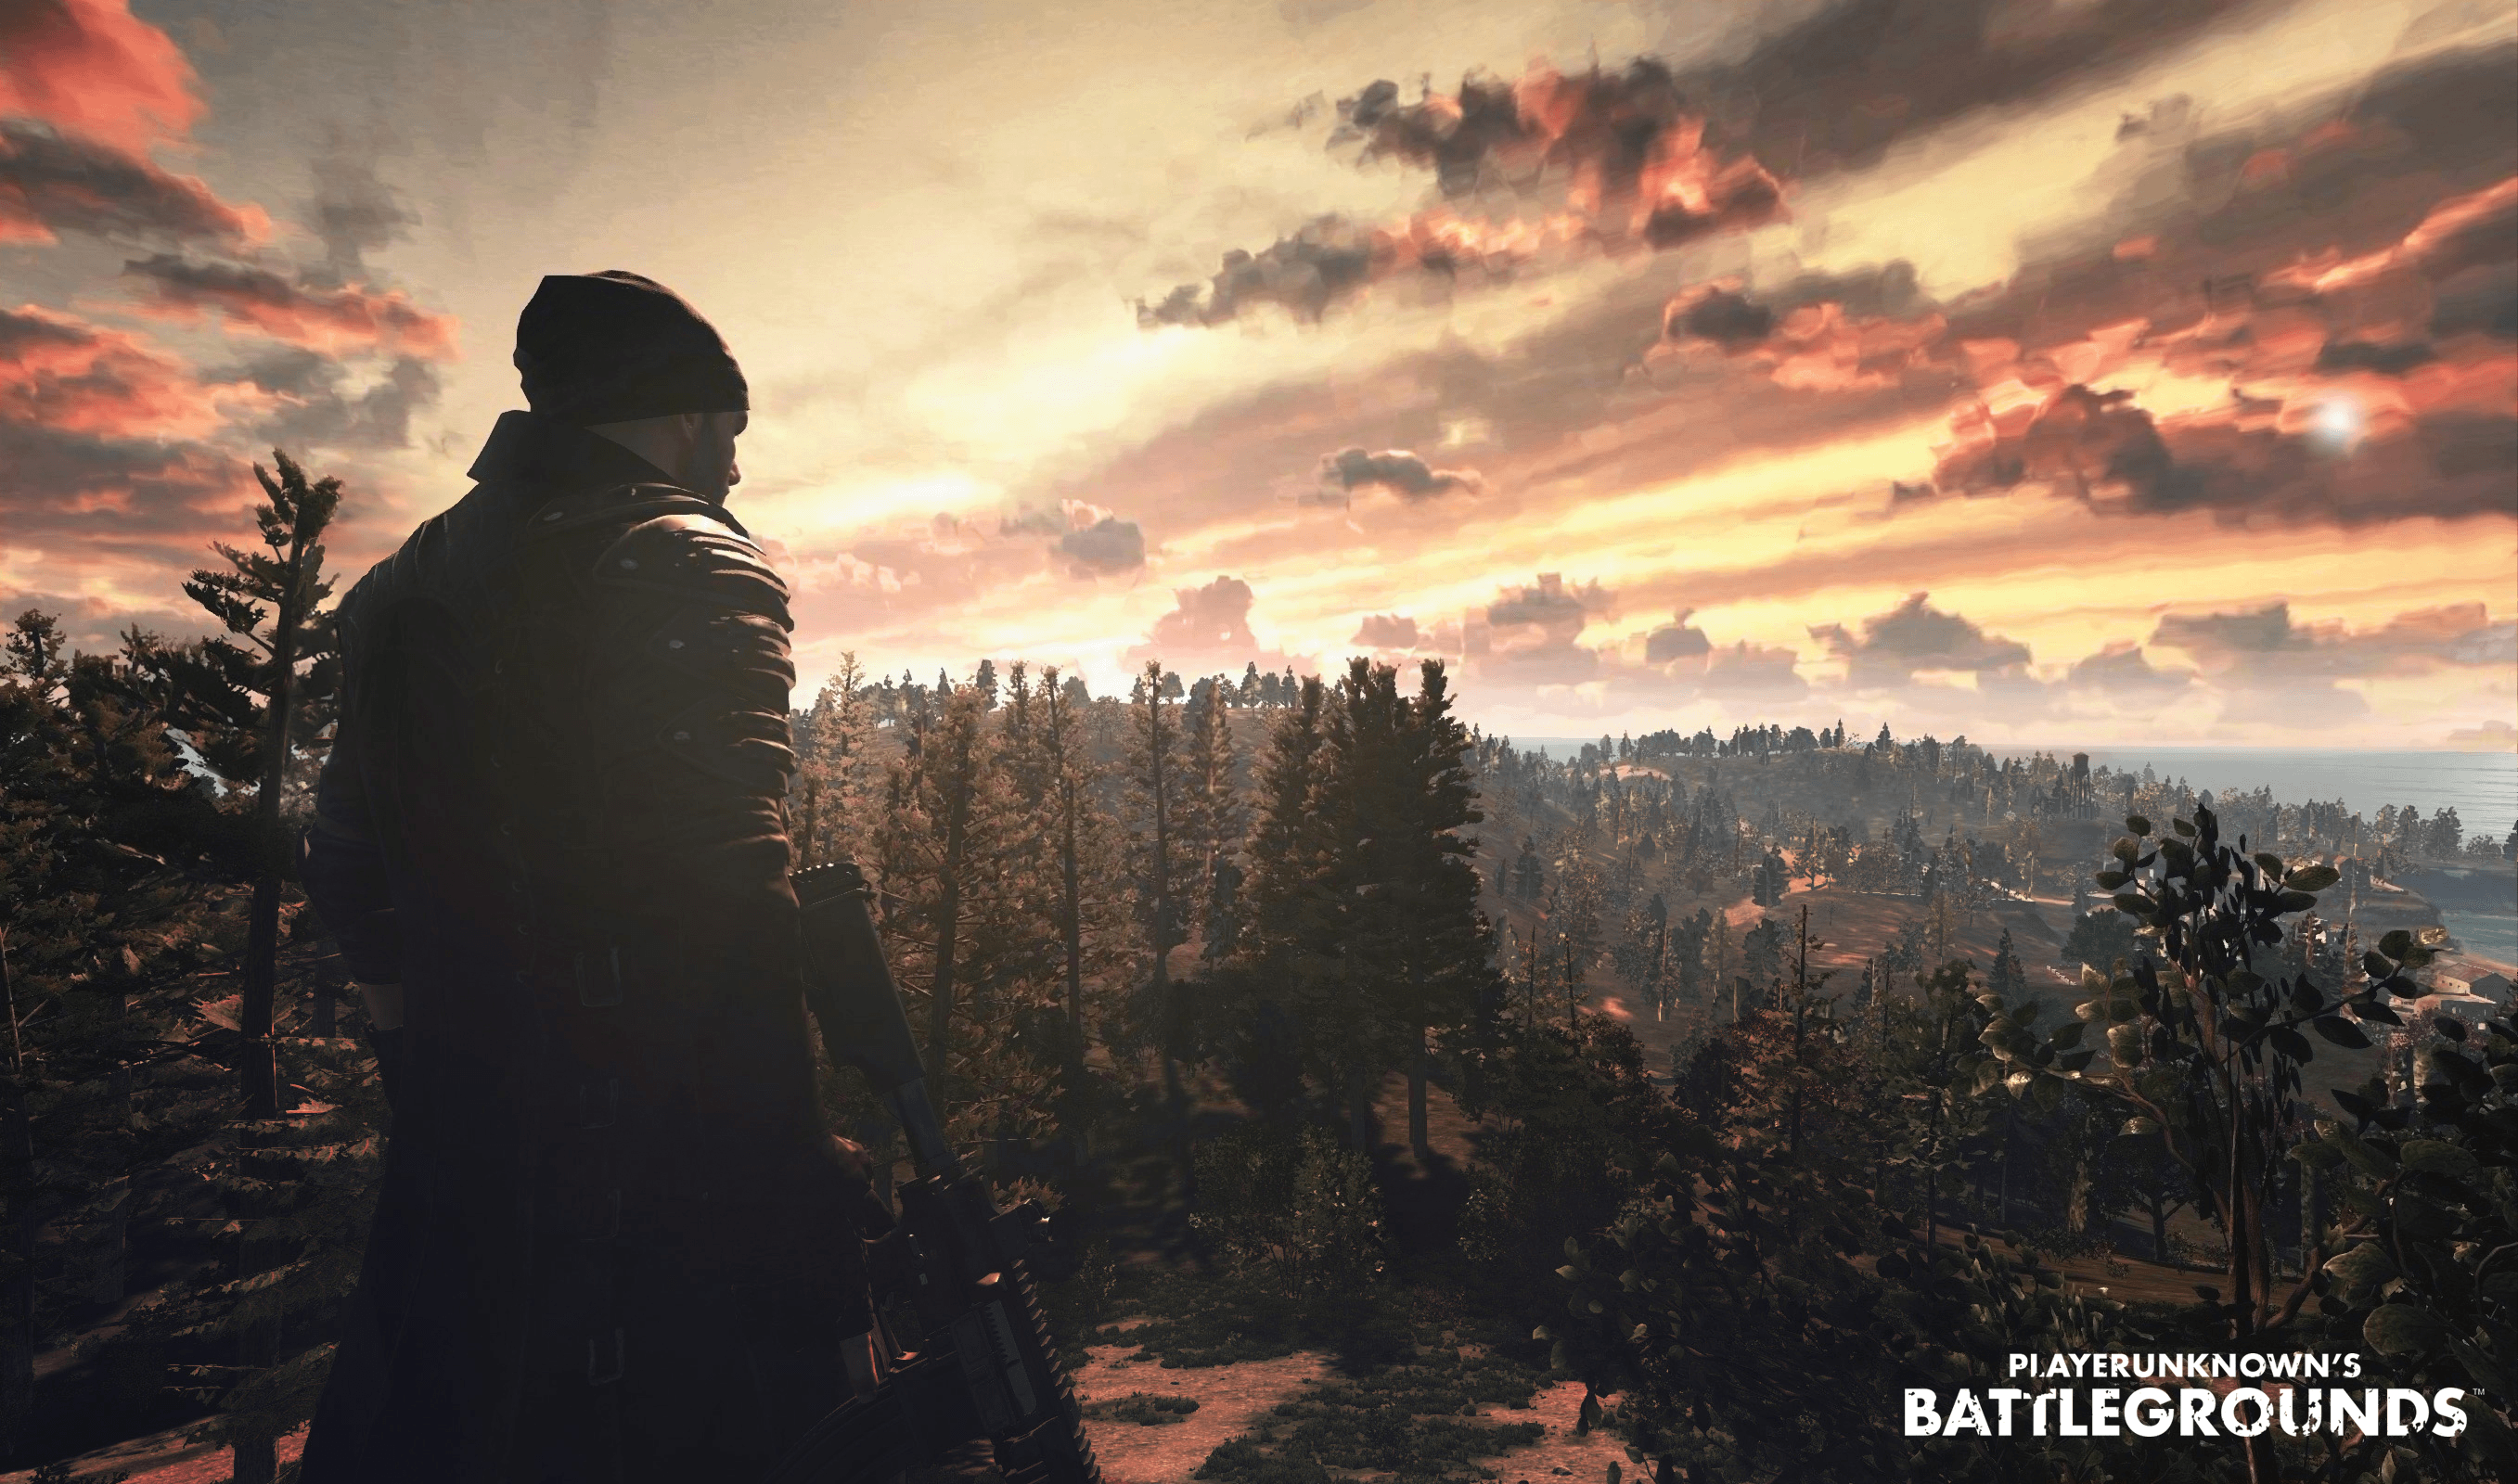 PLAYERUNKNOWN'S BATTLEGROUNDS Wallpapers, Pictures, Image